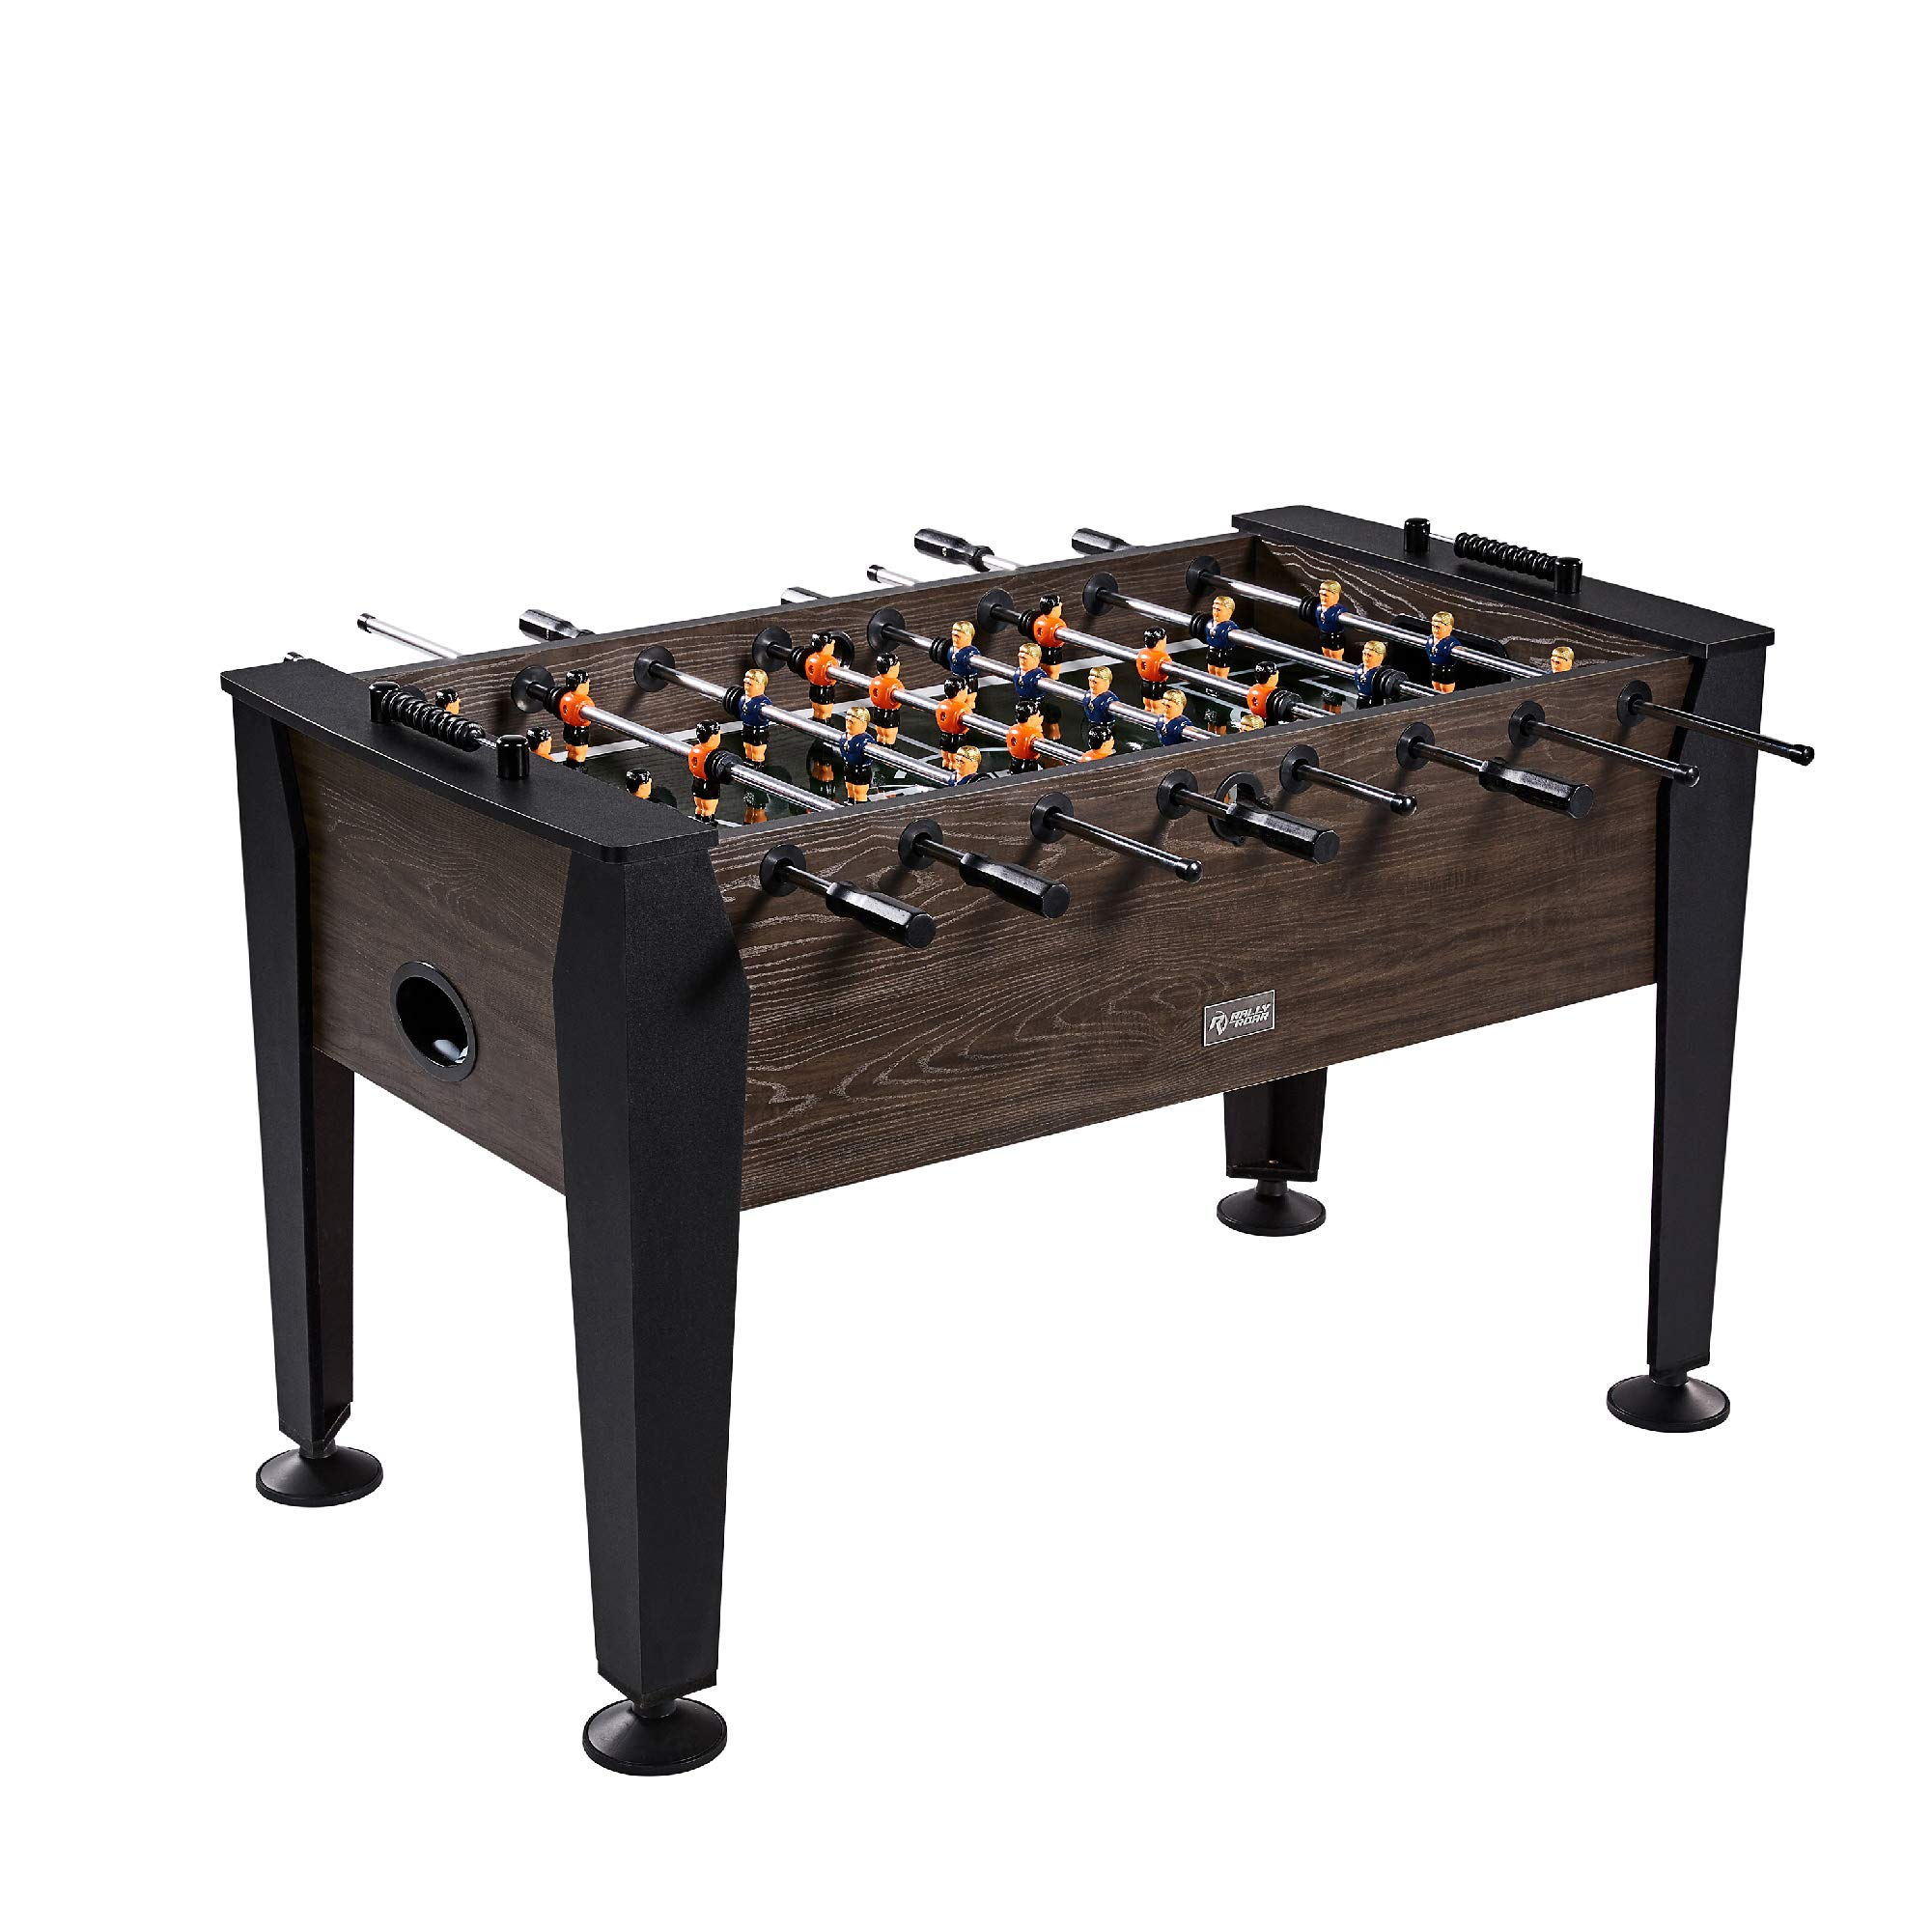 Rally and Roar Foosball Table Game - 56'' Standard Size Fun, Multi Person Table Soccer Adults, Families - Recreational Foosball Games Game Rooms, Arcades, Bars, Parties, Family Night by Rally and Roar